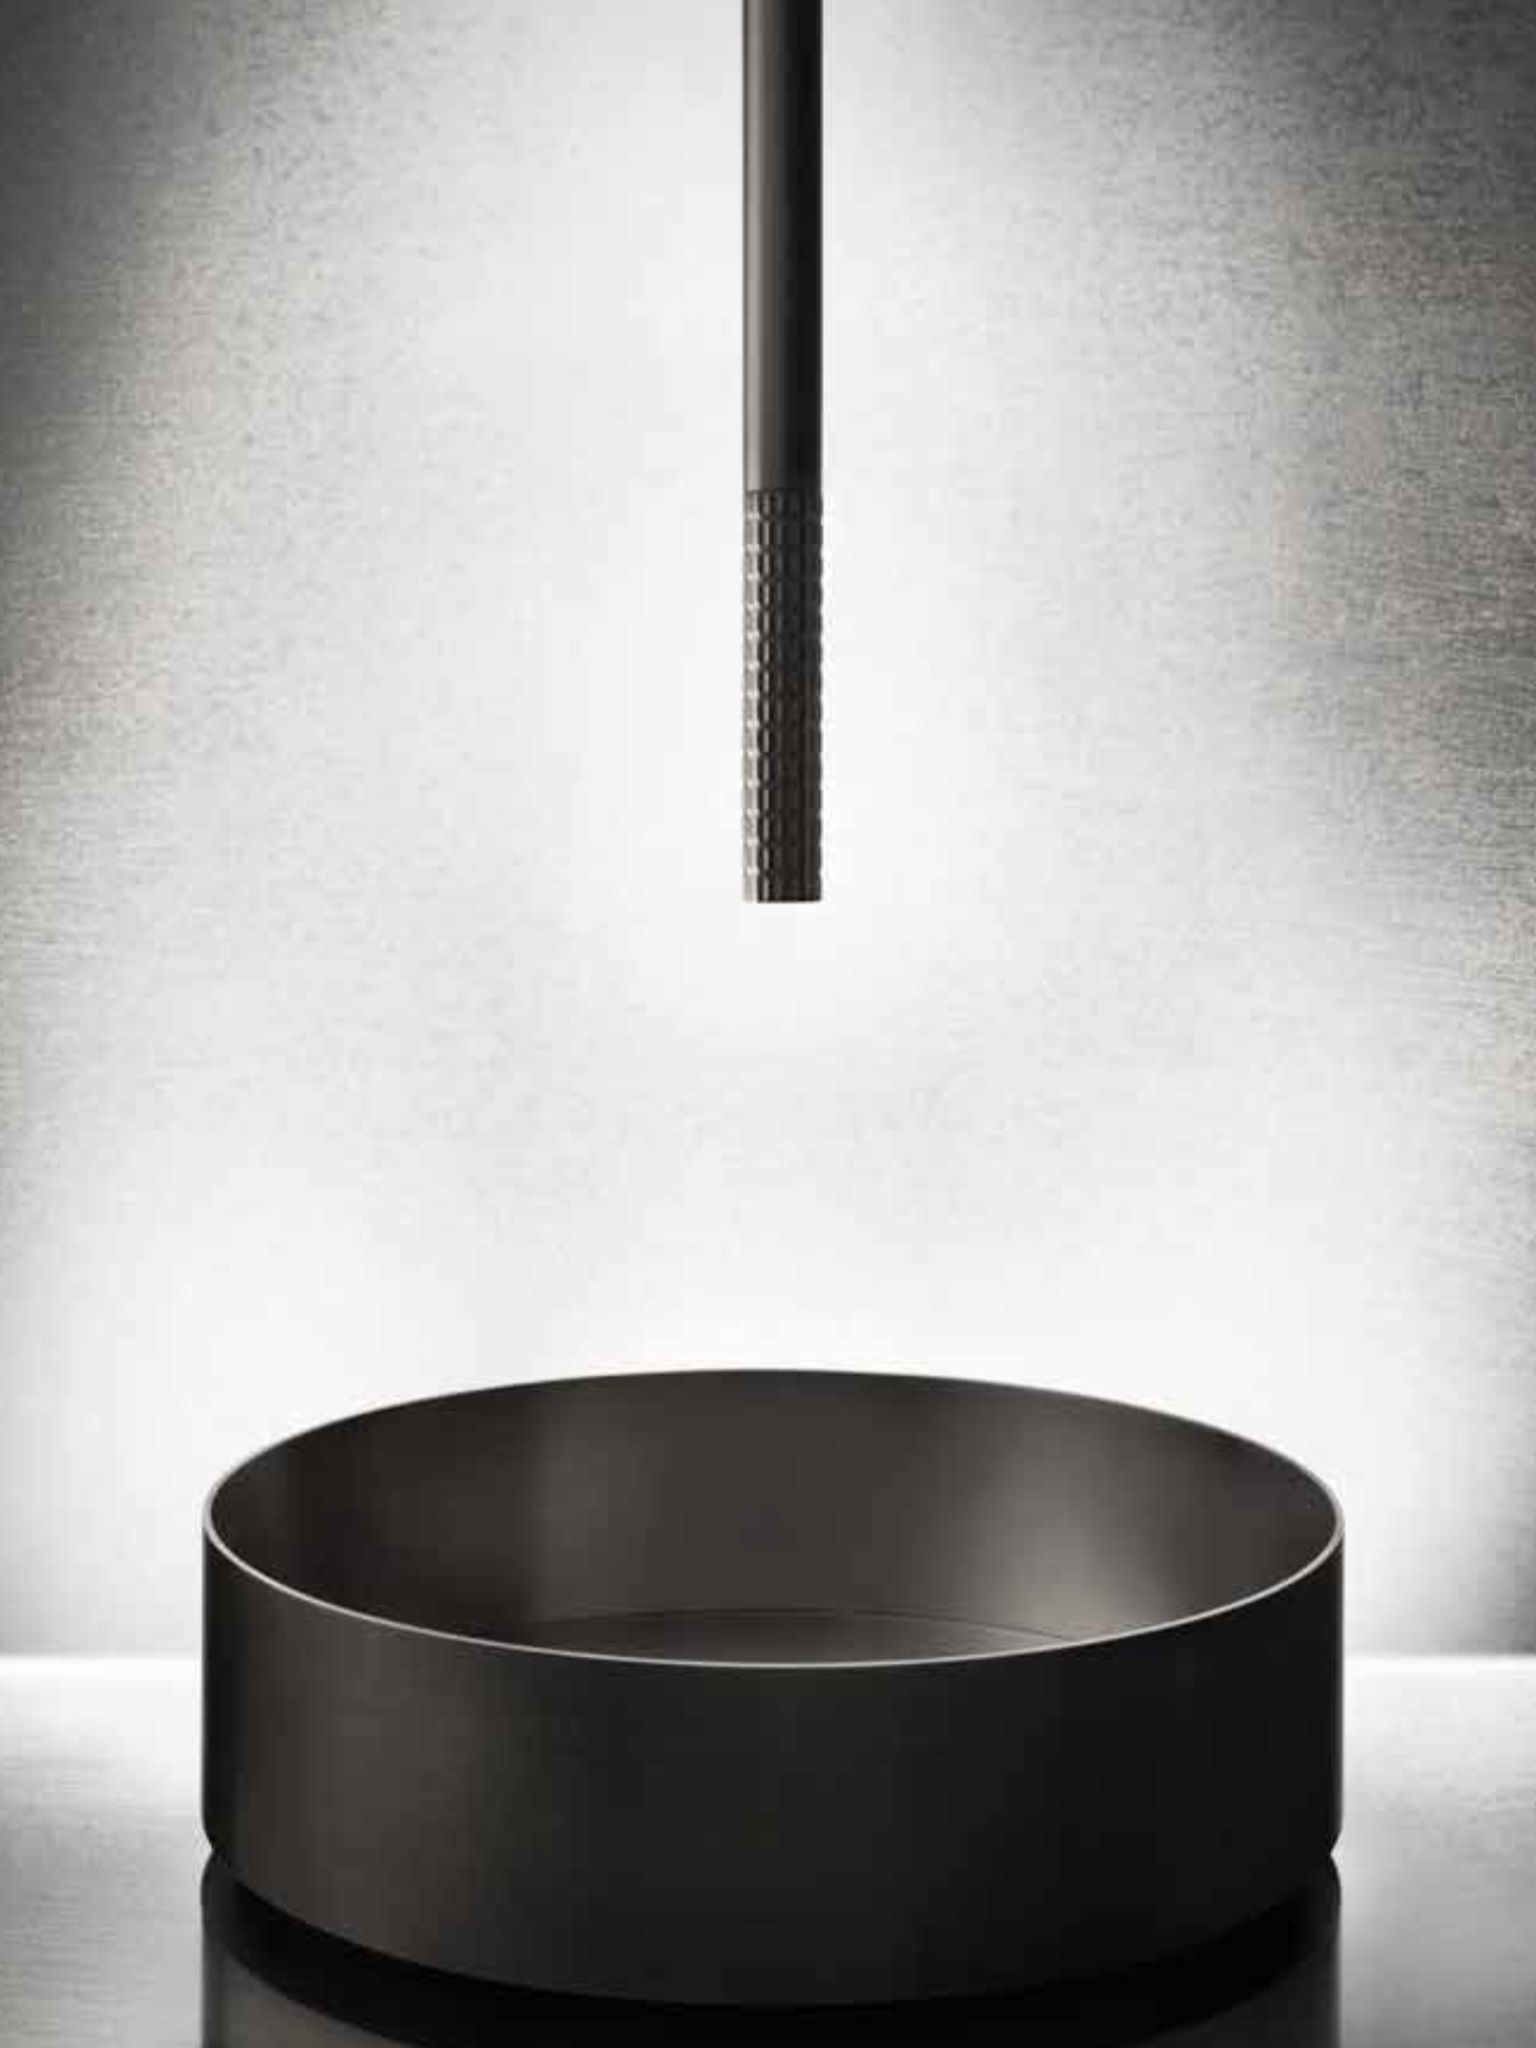 gessi  316  washbasin  bath  bathroom  papapolitis  athens ... 972a1532a4321